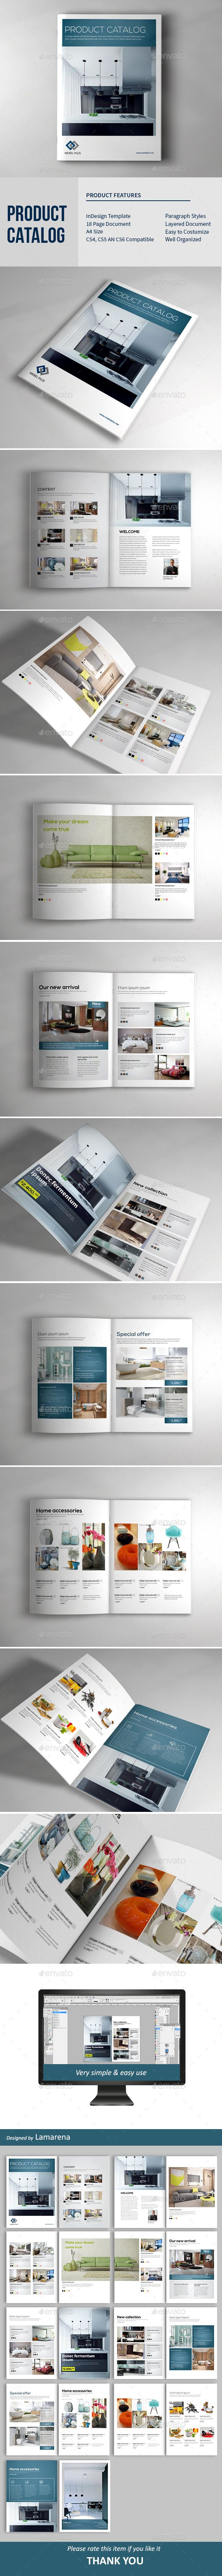 Product Catalog 18 Pages Template InDesign INDD #design Download: http://graphicriver.net/item/product-catalog/14341568?ref=ksioks